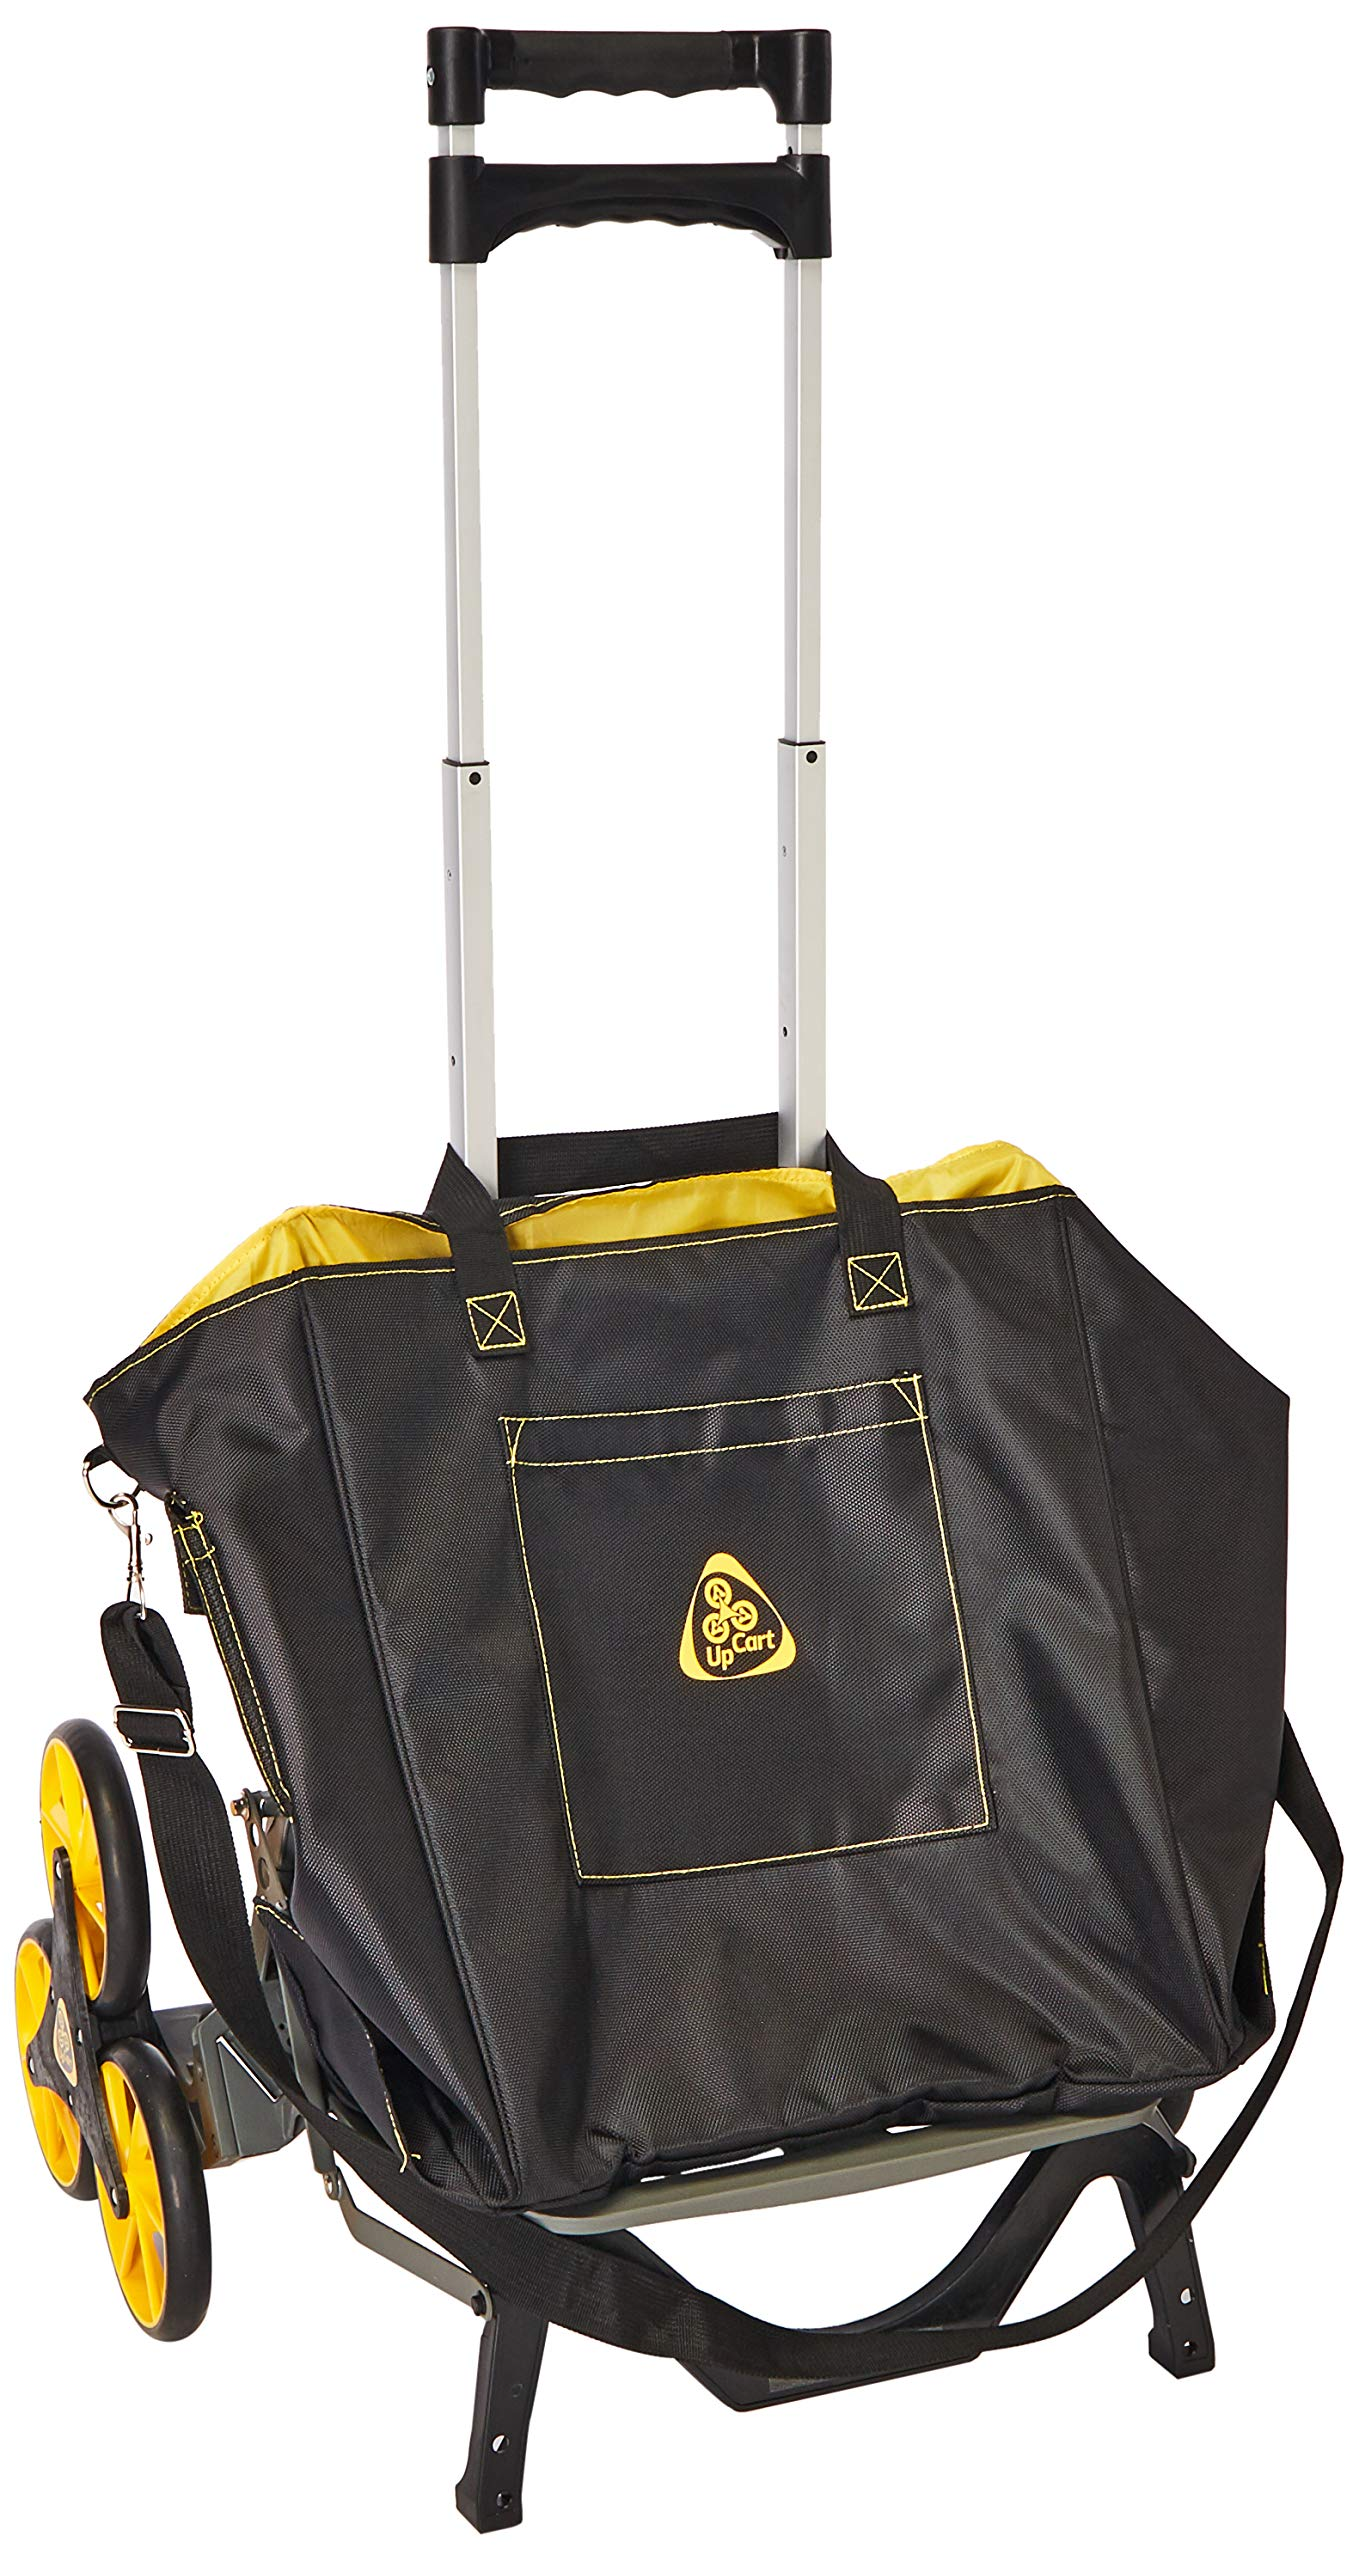 UpCart with Bag Bundle All-Terrain Stair Climbing Folding Cart Moves up to 100-pounds